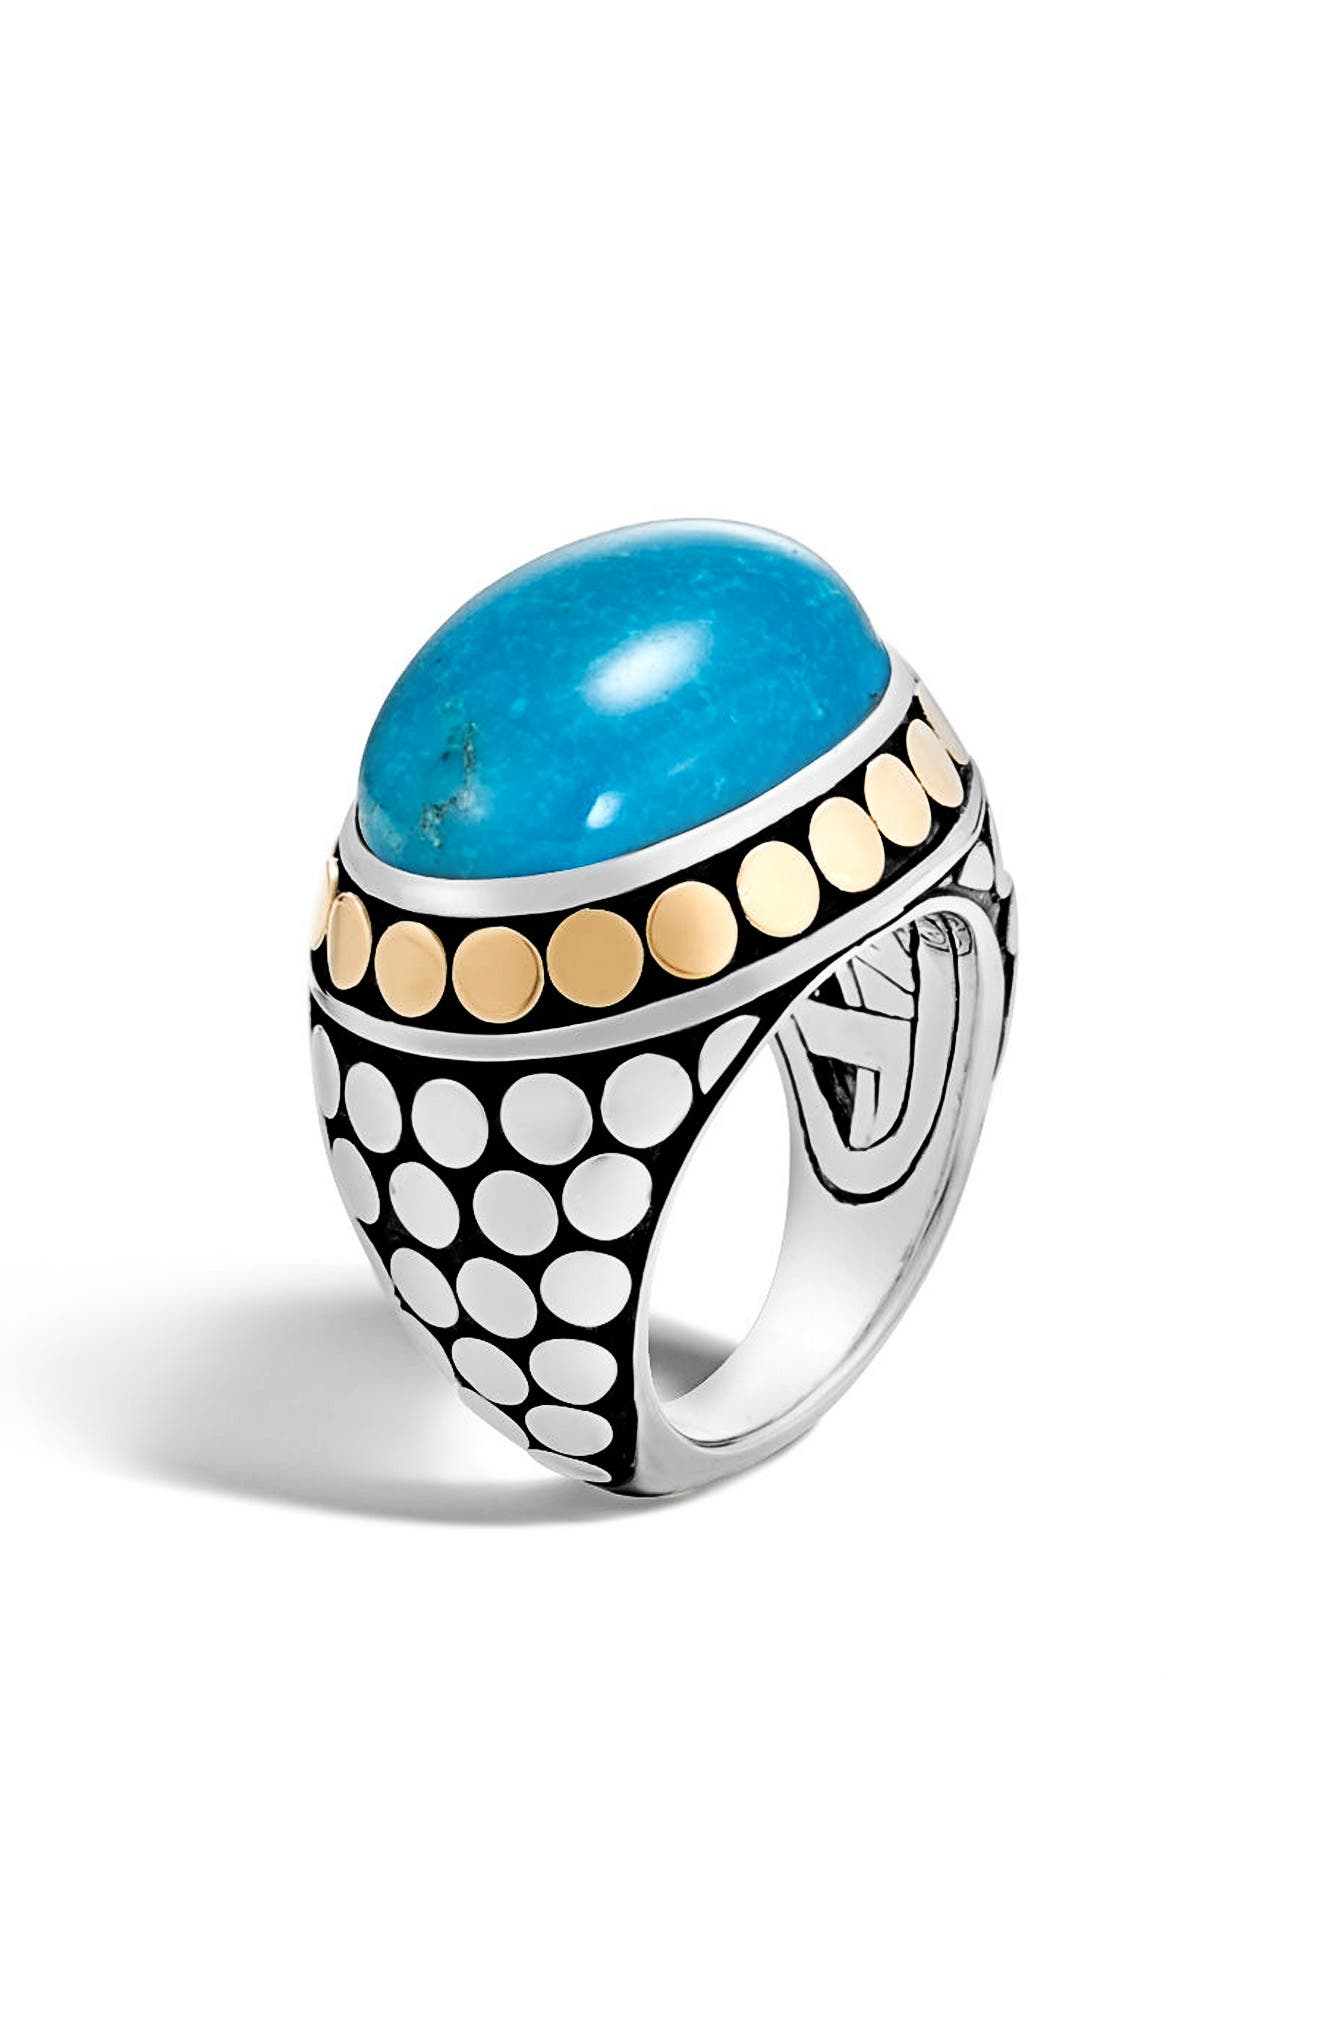 Dot Silver & Turquoise Dome Ring,                         Main,                         color, Silver/ Gold/ Turquoise